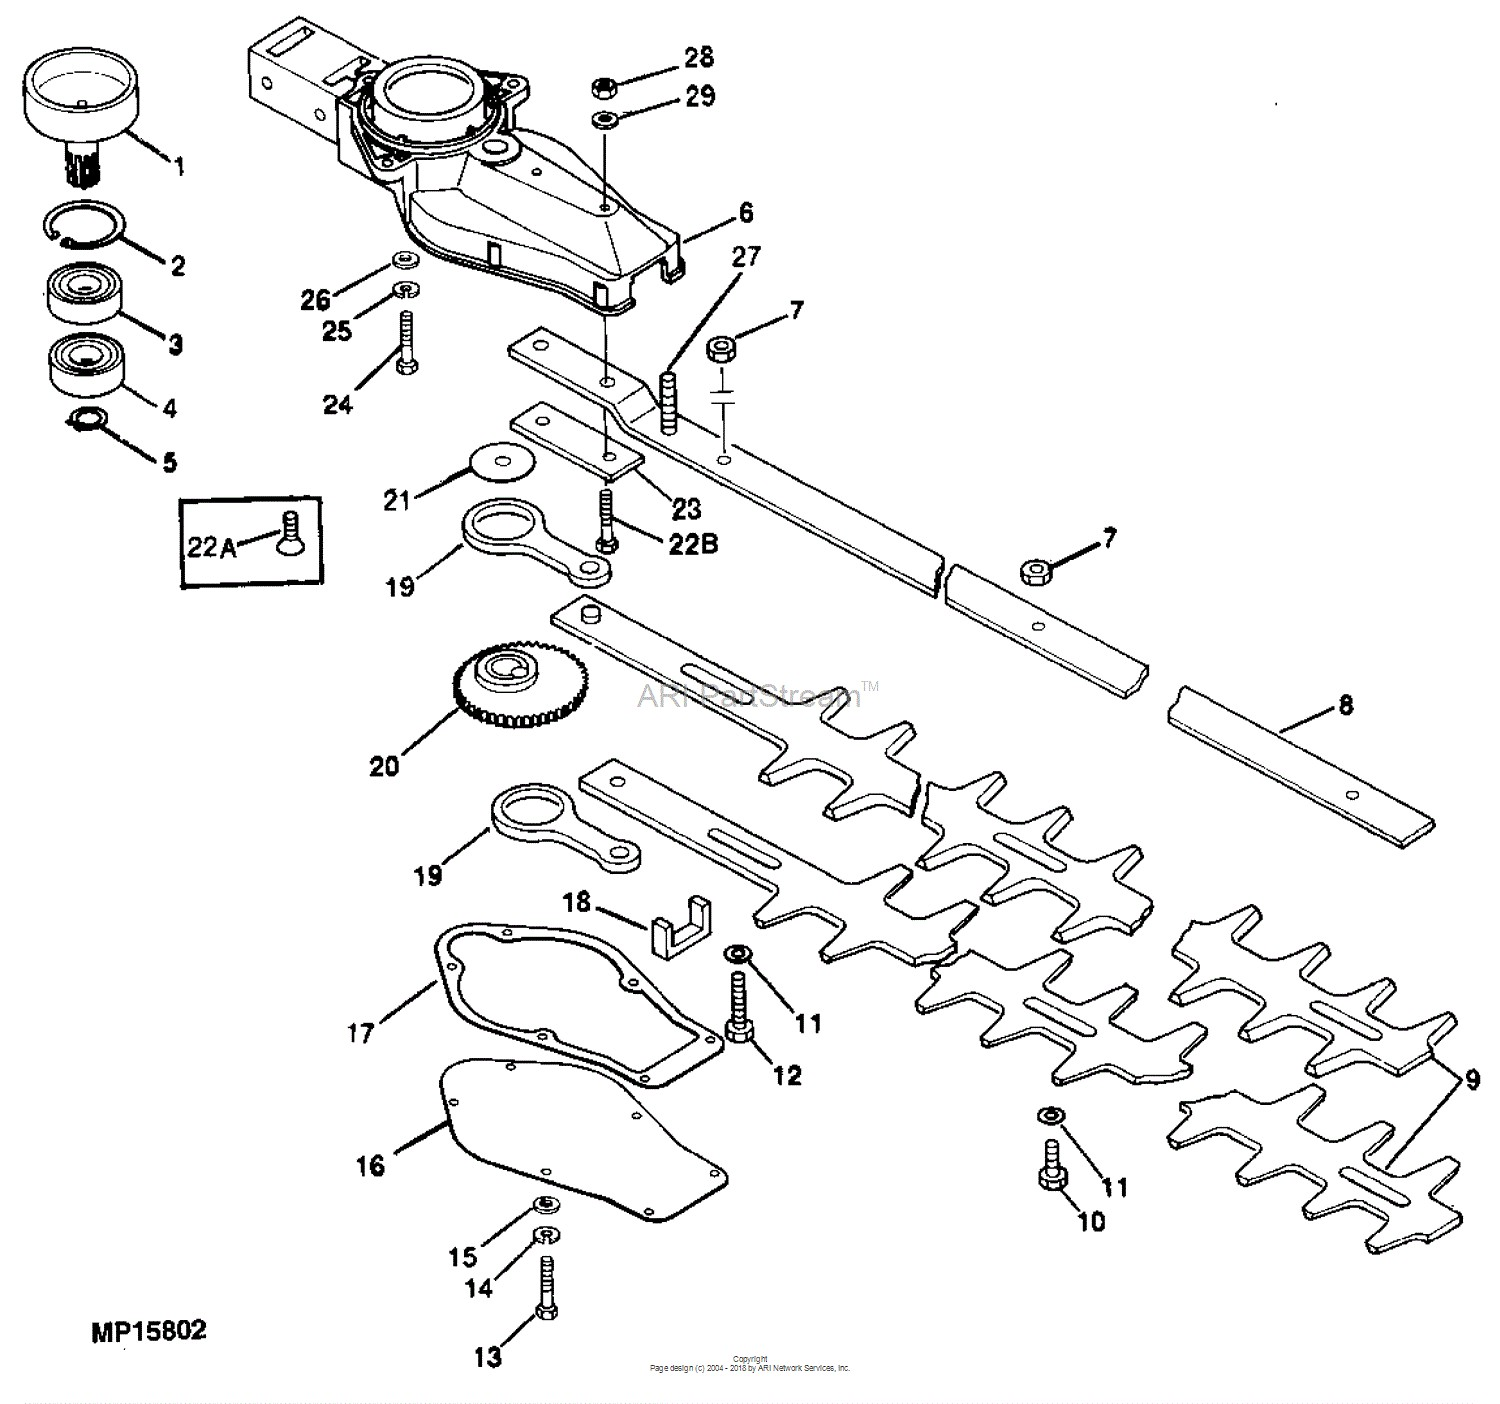 Flywheel Clutch Diagram John Deere Parts Diagrams John Deere 162 Hedge Trimmer Pc2119 Of Flywheel Clutch Diagram Mounting Clutch to Flywheel and Mating Gearbox Input Shaft